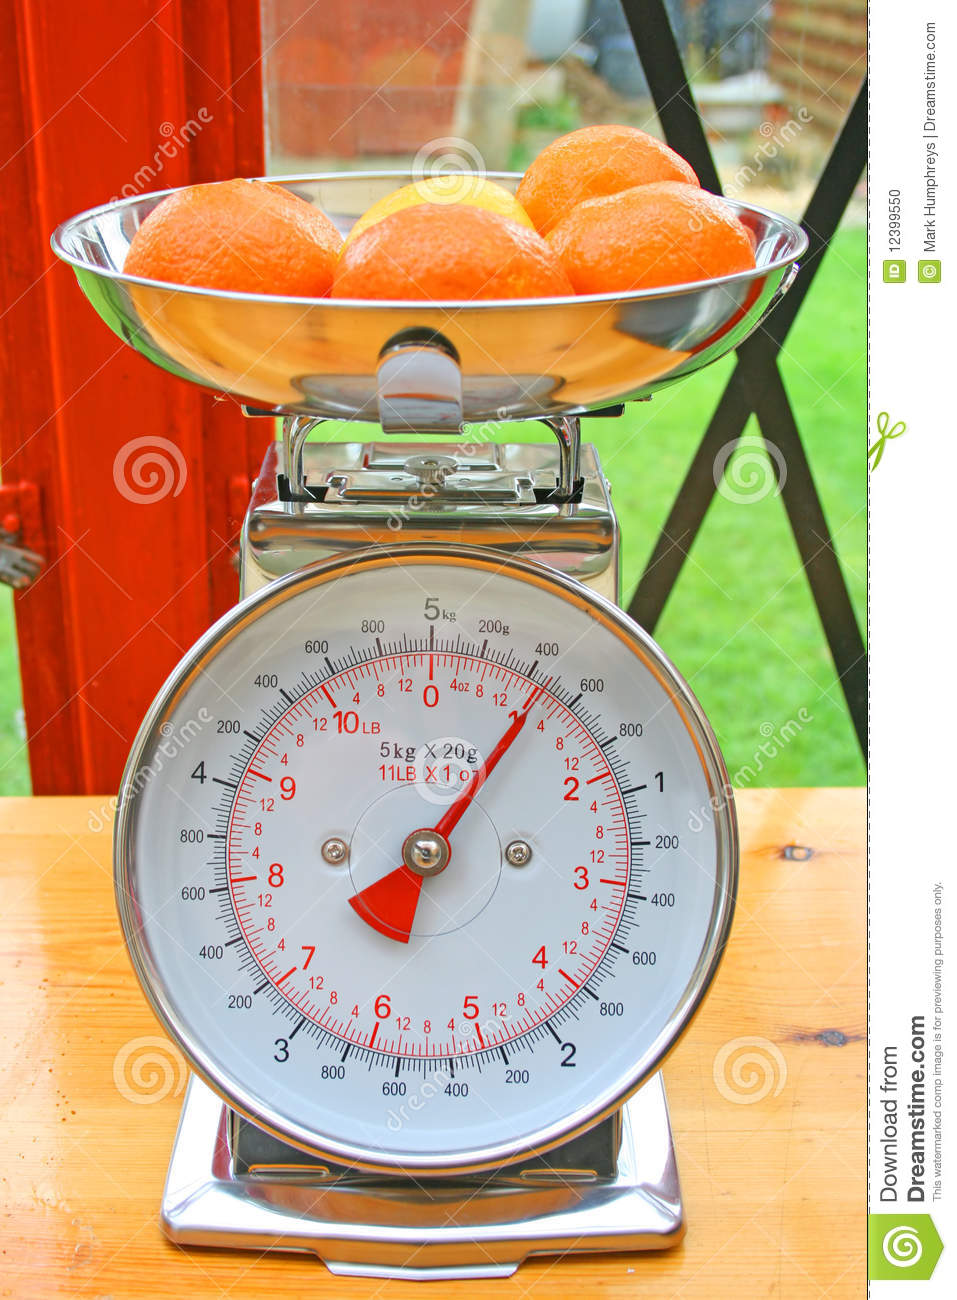 Fruit On Weighing Scales Stock Photo Image 12399550